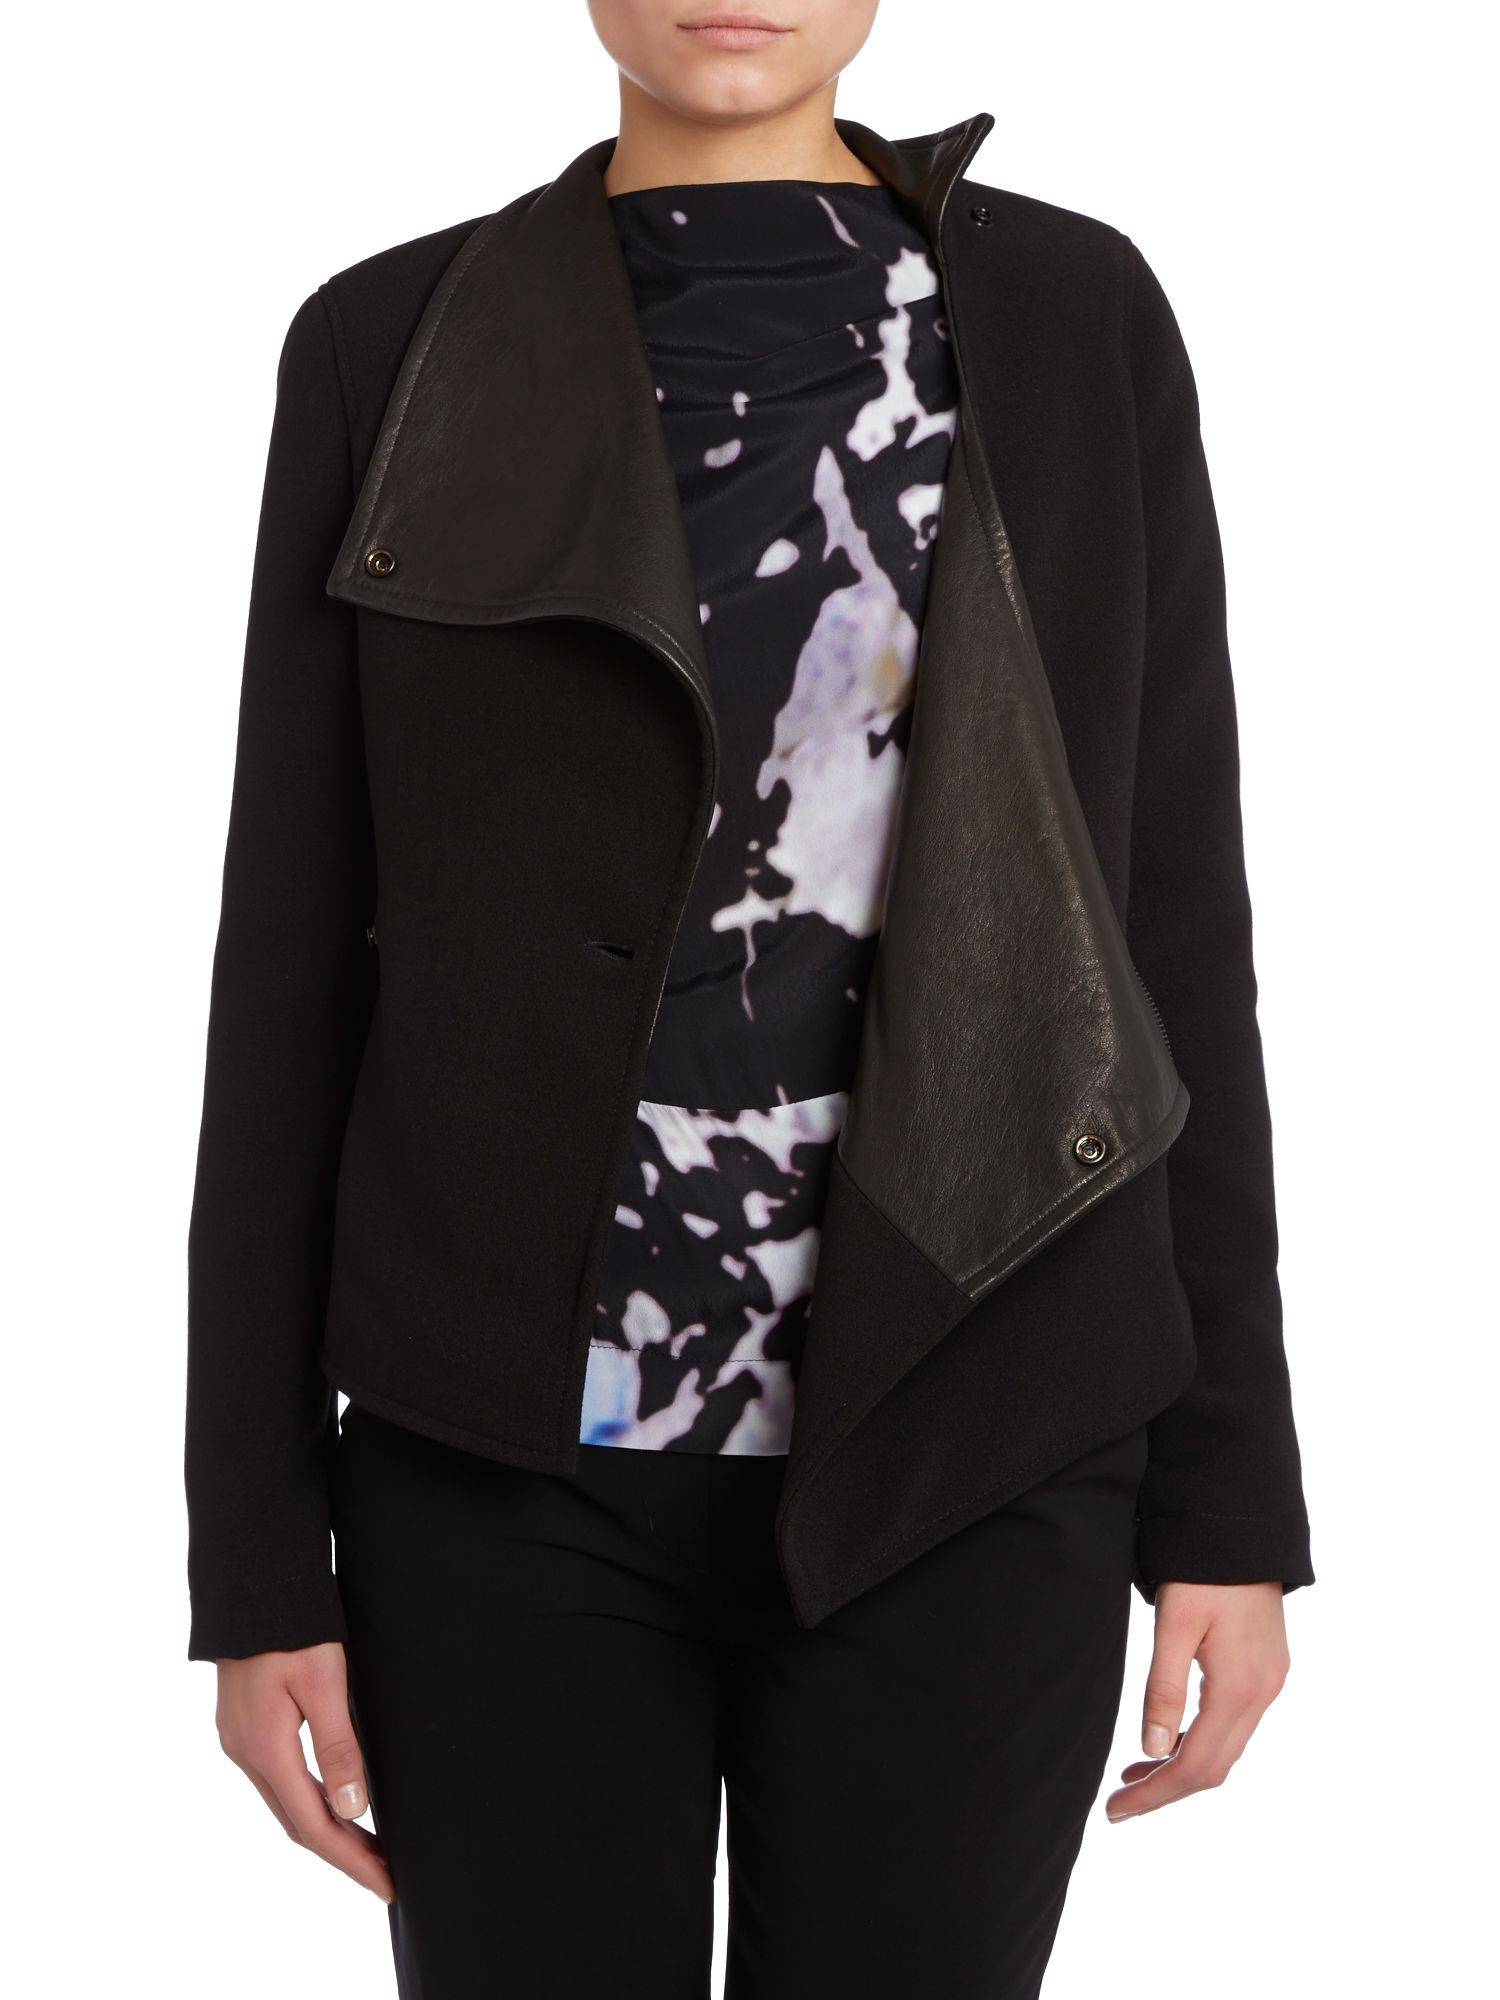 Voodoo asymmetric leather mix jacket